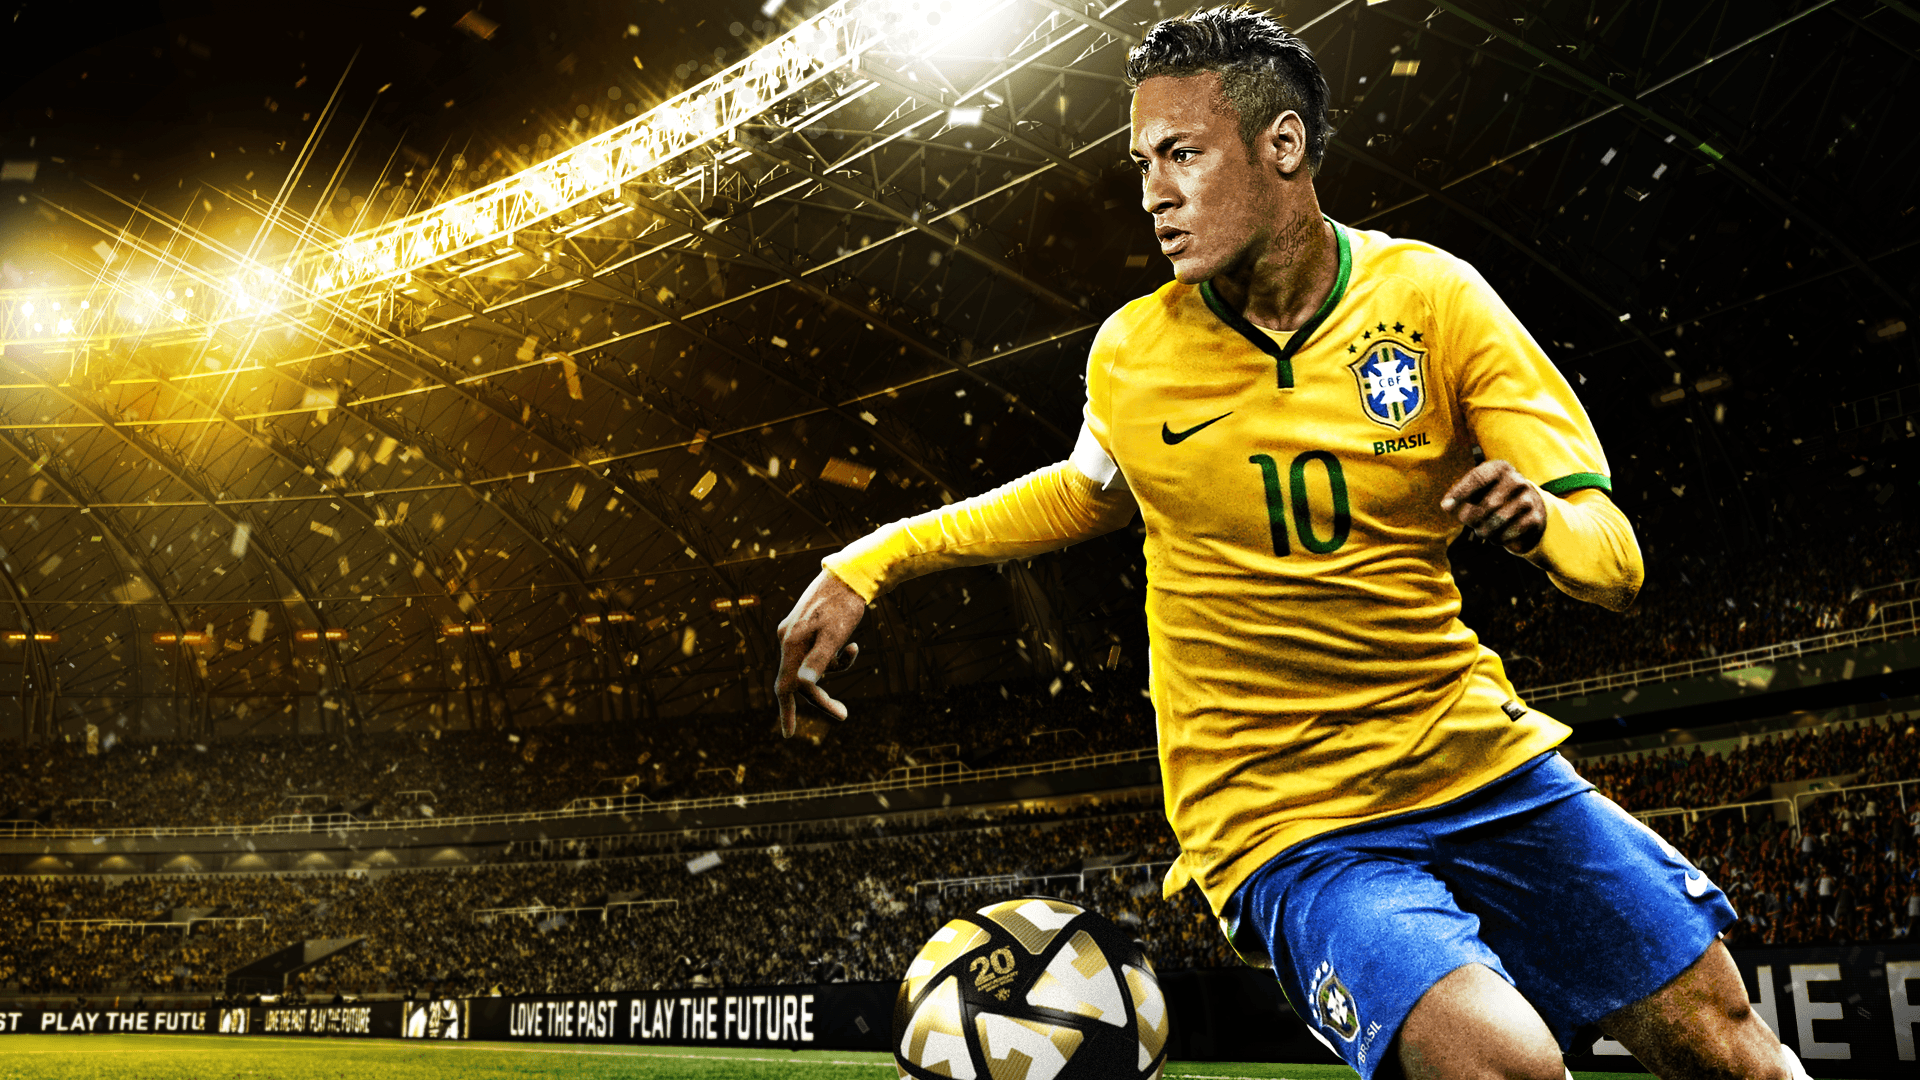 Neymar jr 2017 wallpapers wallpaper cave - Brazil football hd wallpapers 2018 ...